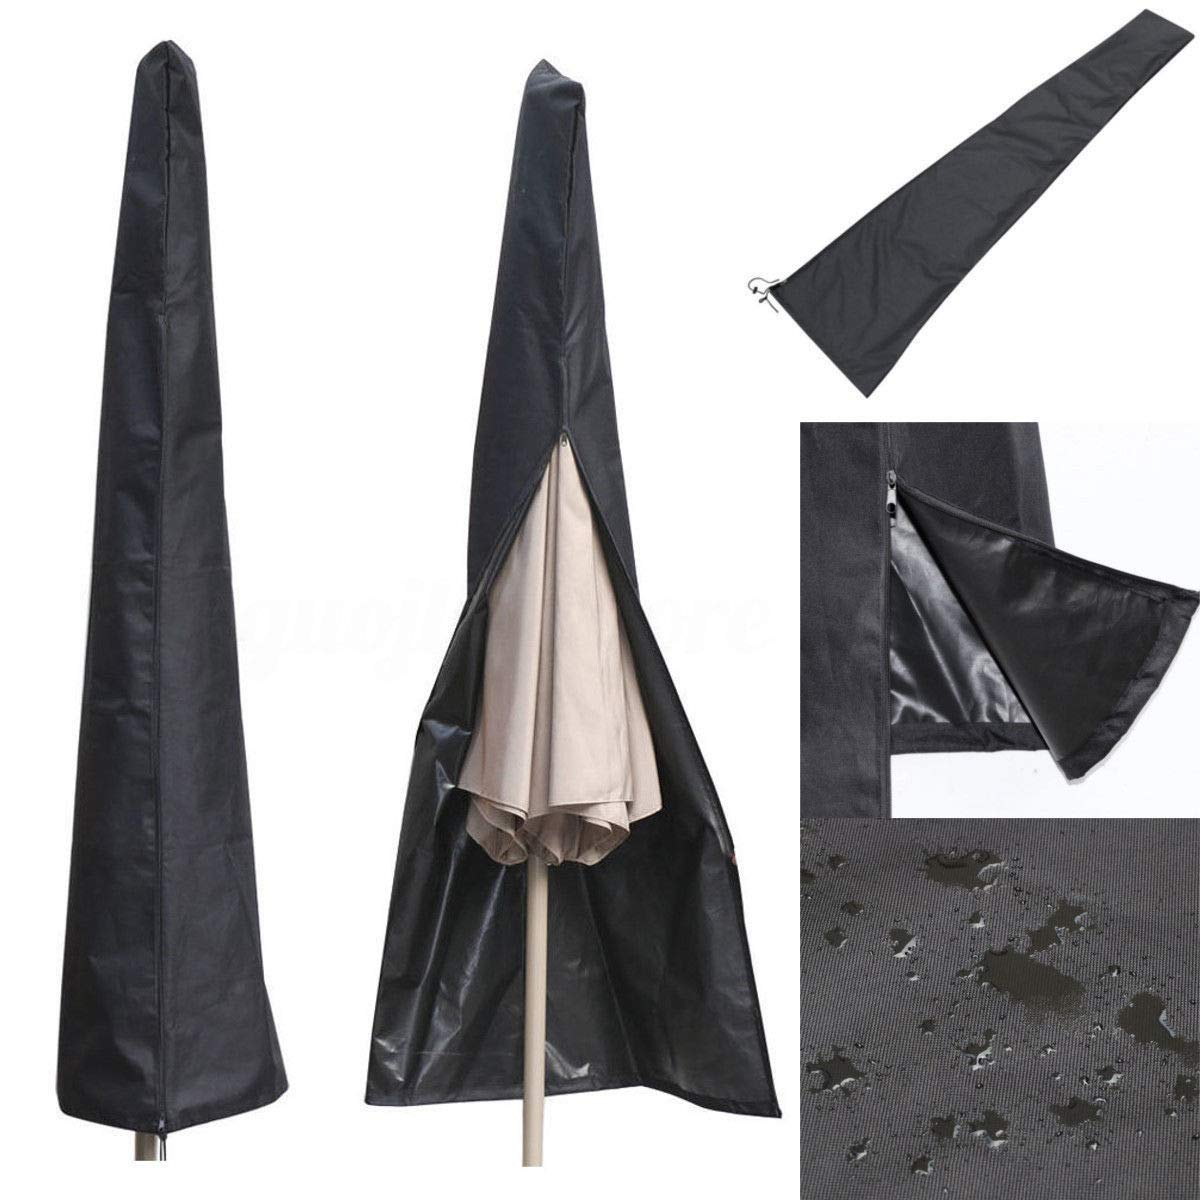 ALLOMN Outdoor Patio Umbrella Cover, Waterproof and UV Protection Fabric Parasol Cover for 9-11 Feet Garden Yard Balcony Umbrellas by ALLOMN